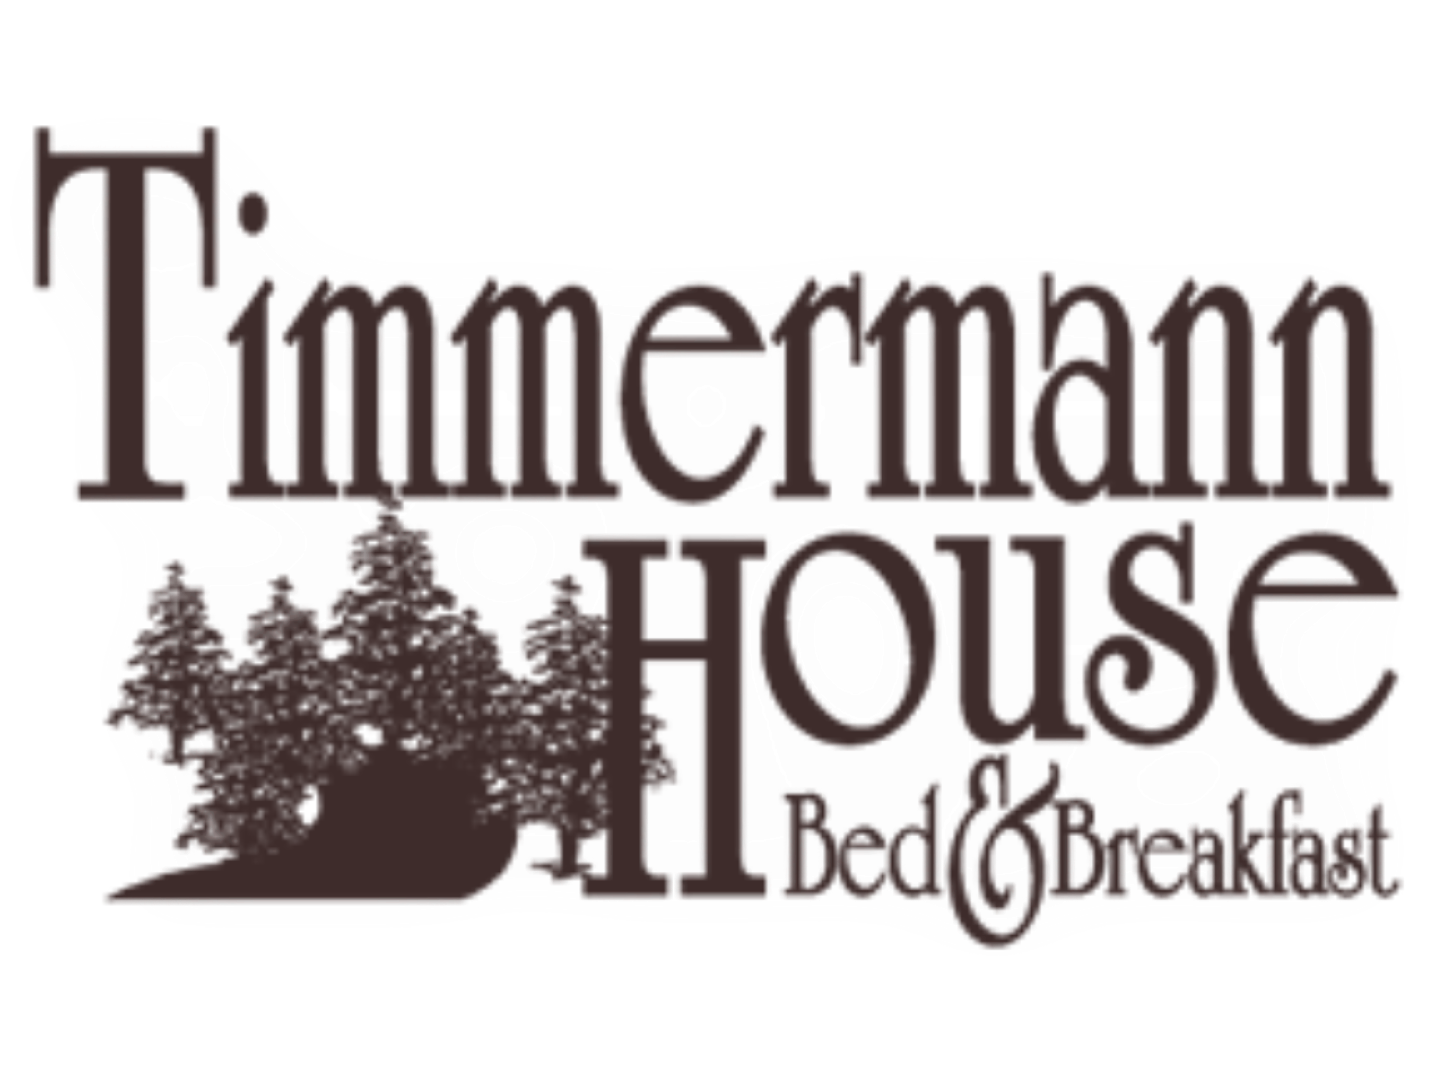 A close up of a logo at Timmermann House Bed & Breakfast.